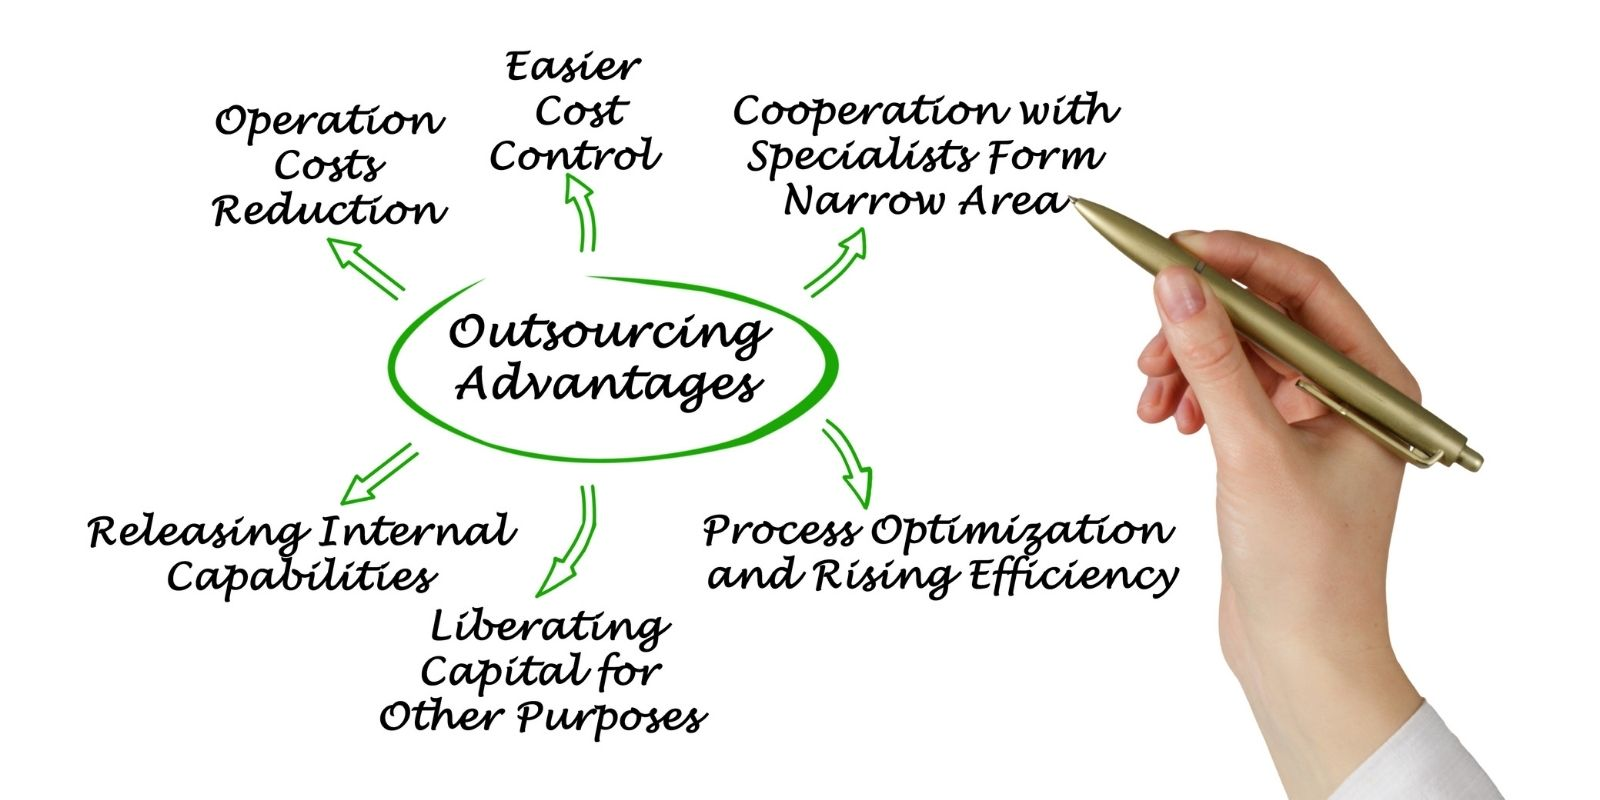 Ecommerce Outscourcing Advantages